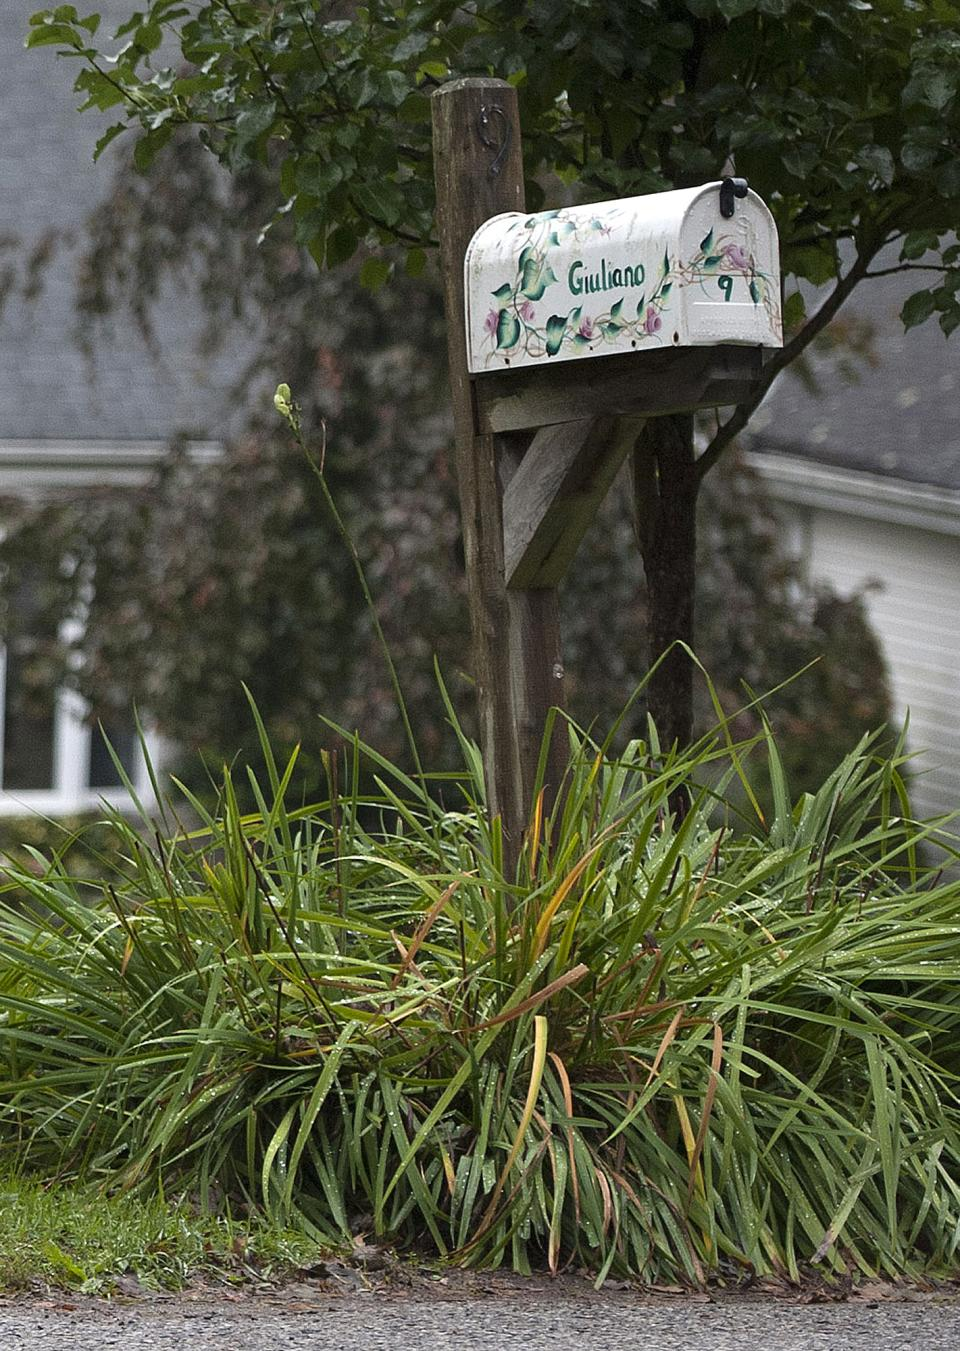 A mailbox sits in front of the home of Jeffrey Giuliano in New Fairfield, Conn., Friday, Sept. 28, 2012. Giuliano fatally shot a masked teenager in self-defense during what appeared to be an attempted burglary early Thursday morning, then discovered that he had killed his son, state police said. (AP Photo/Jessica Hill)